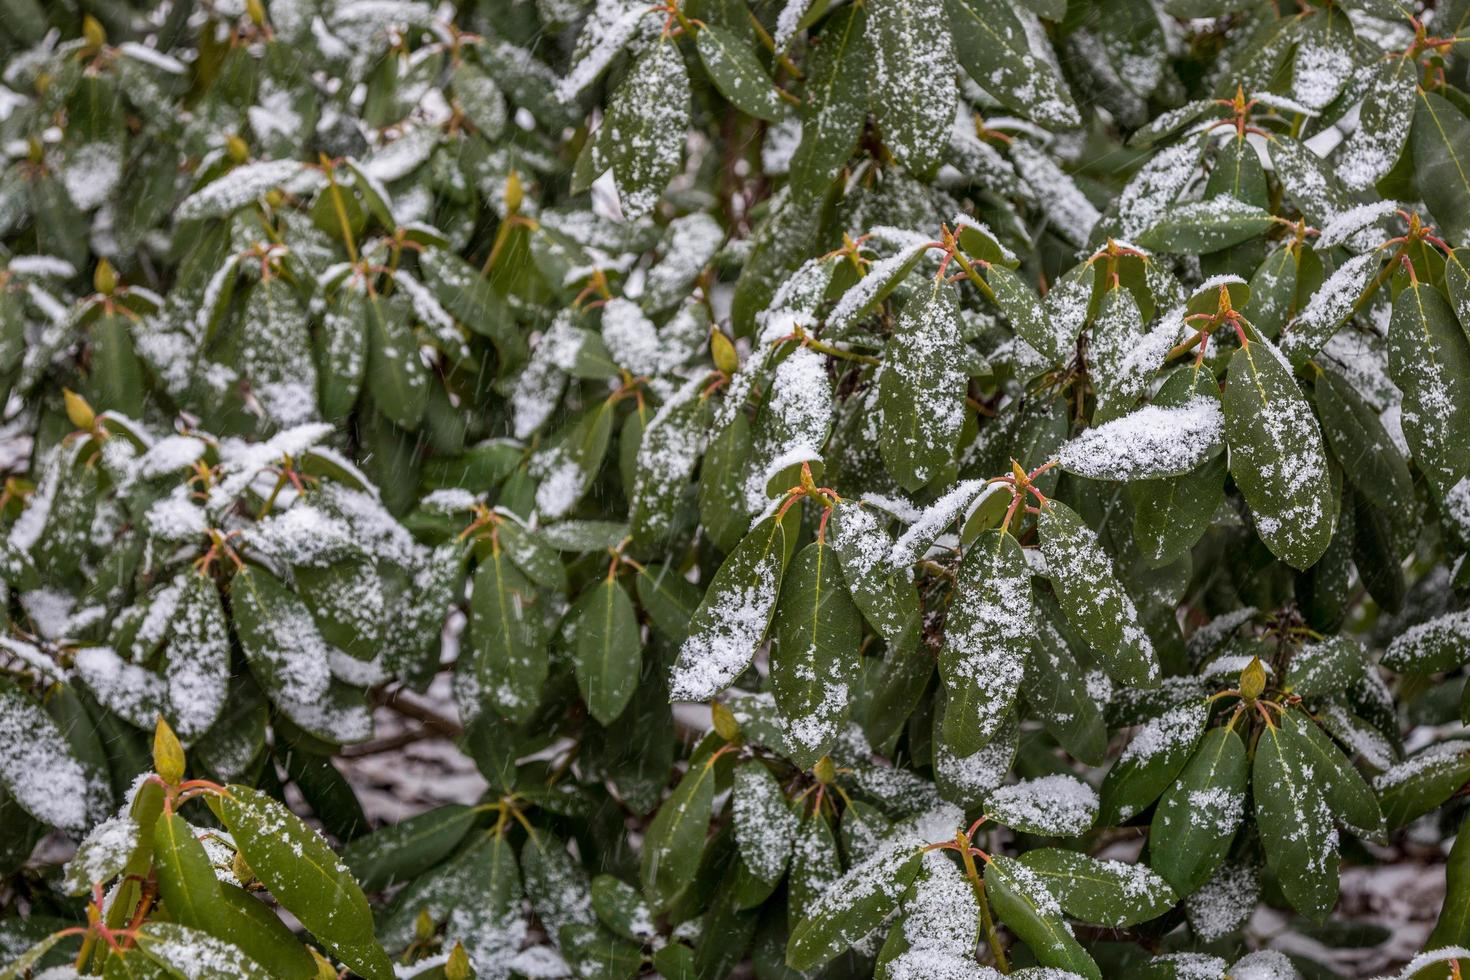 Snow-covered leaves after a winter storm photo